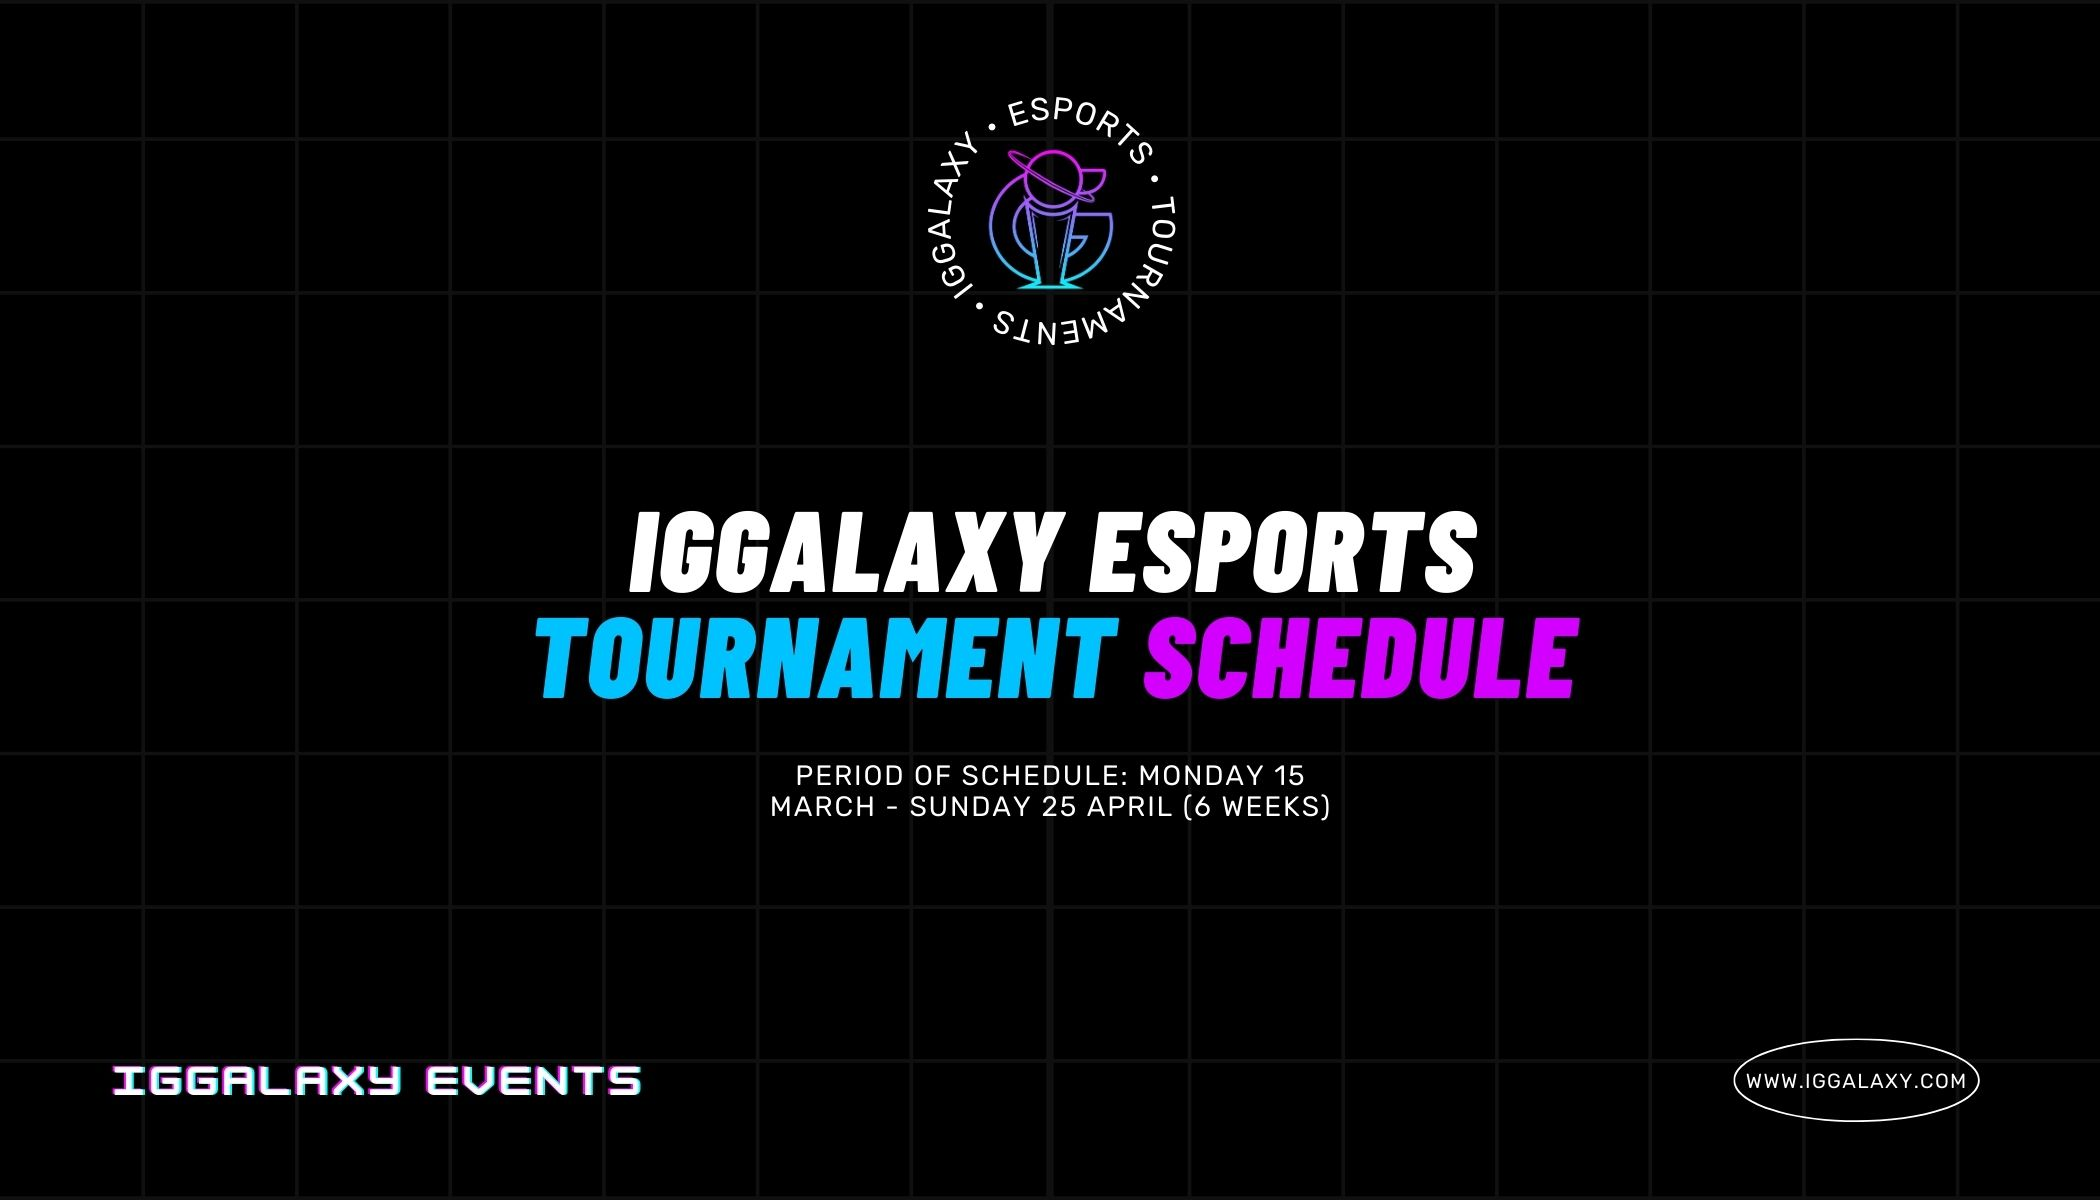 IGGalaxy's esports tournament schedule: 15/03/2021-25/04/2021!